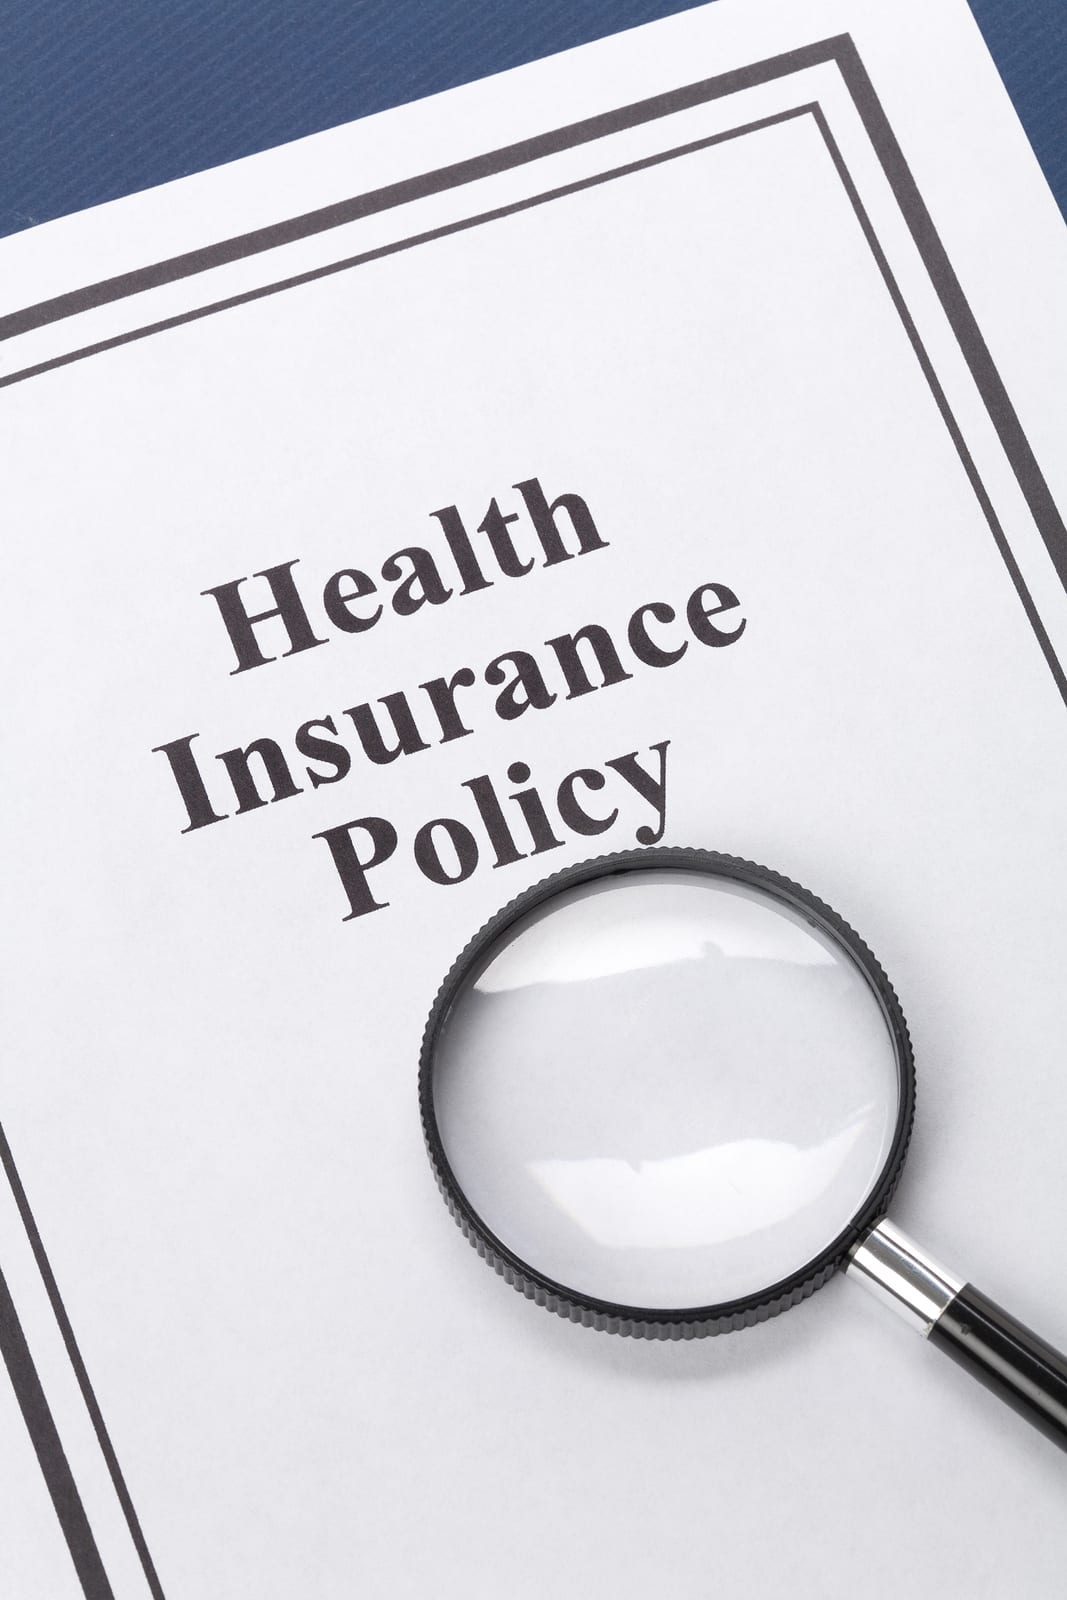 Magnifying glass set on a health insurance policy booklet.